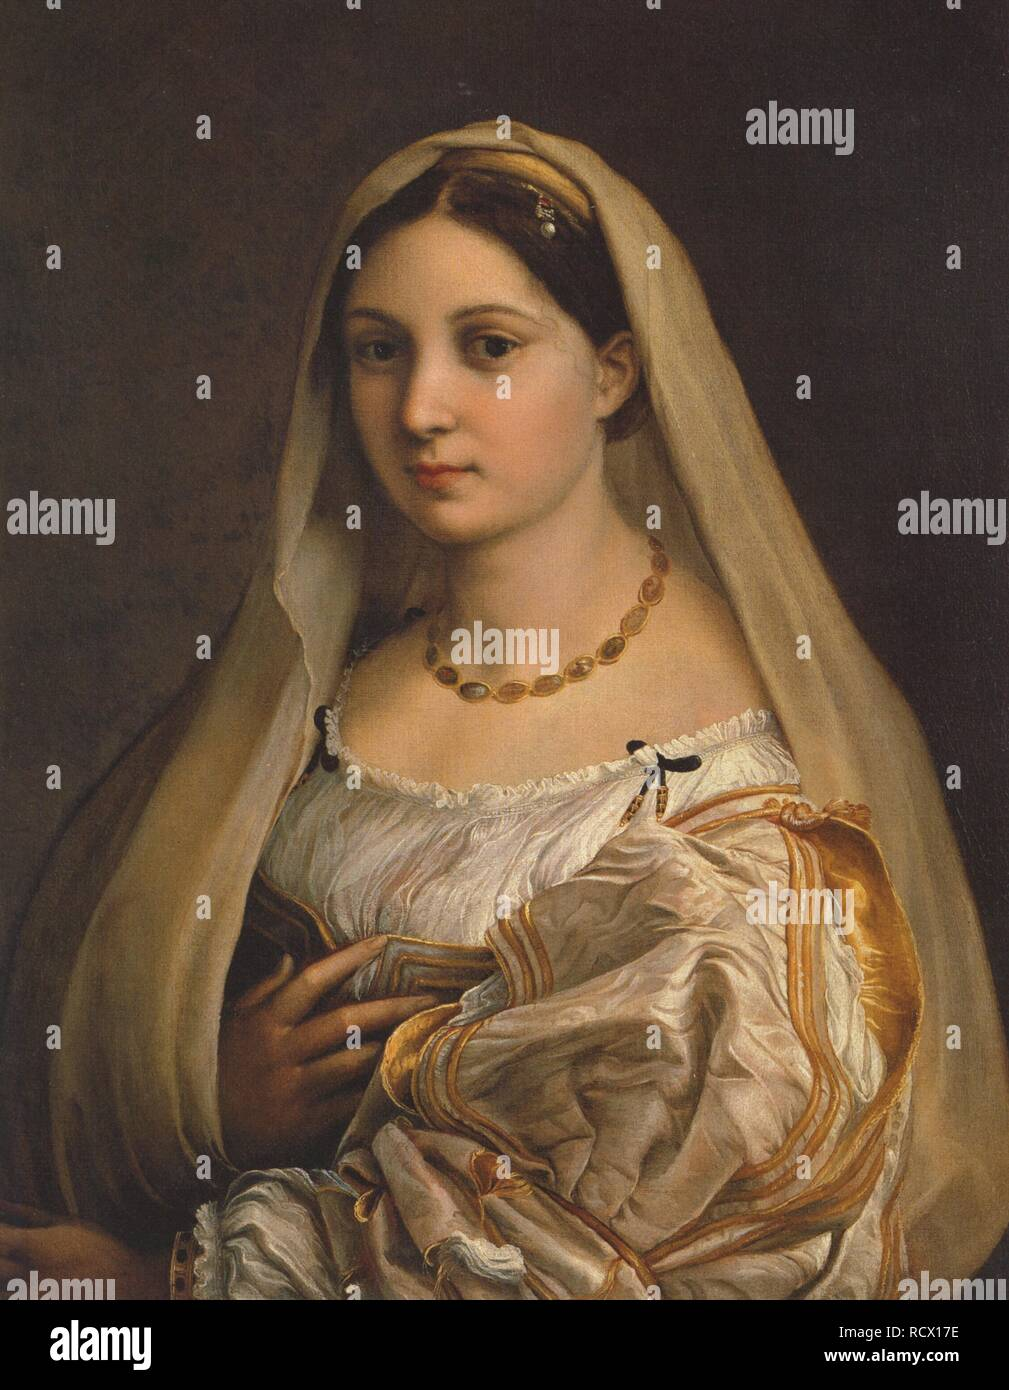 La donna velata (The woman with the veil). Museum: Palazzo Pitti, Florence. Author: Raphael (Raffaello Sanzio da Urbino). Stock Photo